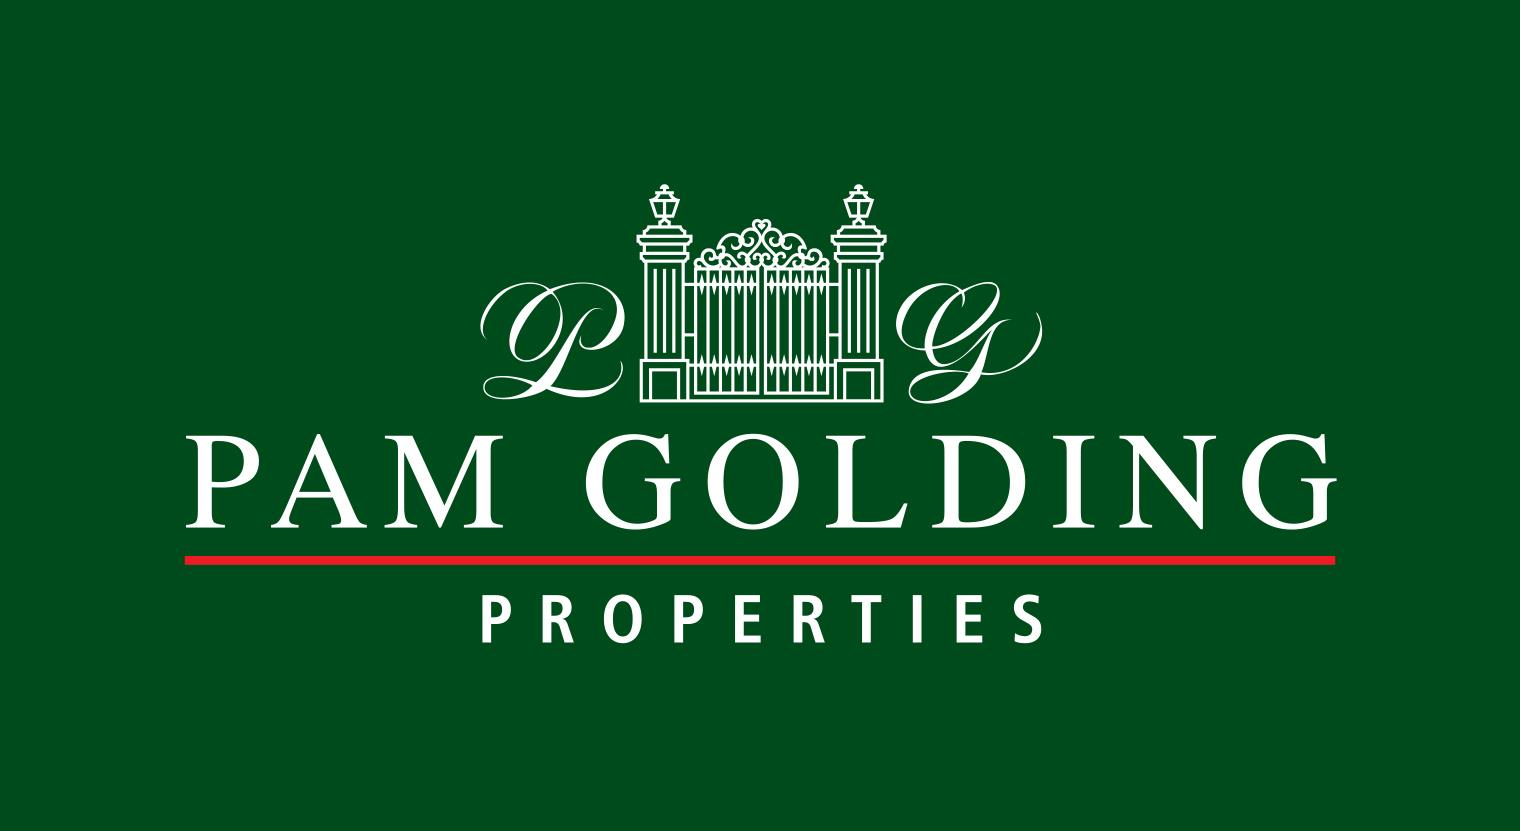 Property for sale by Pam Golding Properties - Umtentweni